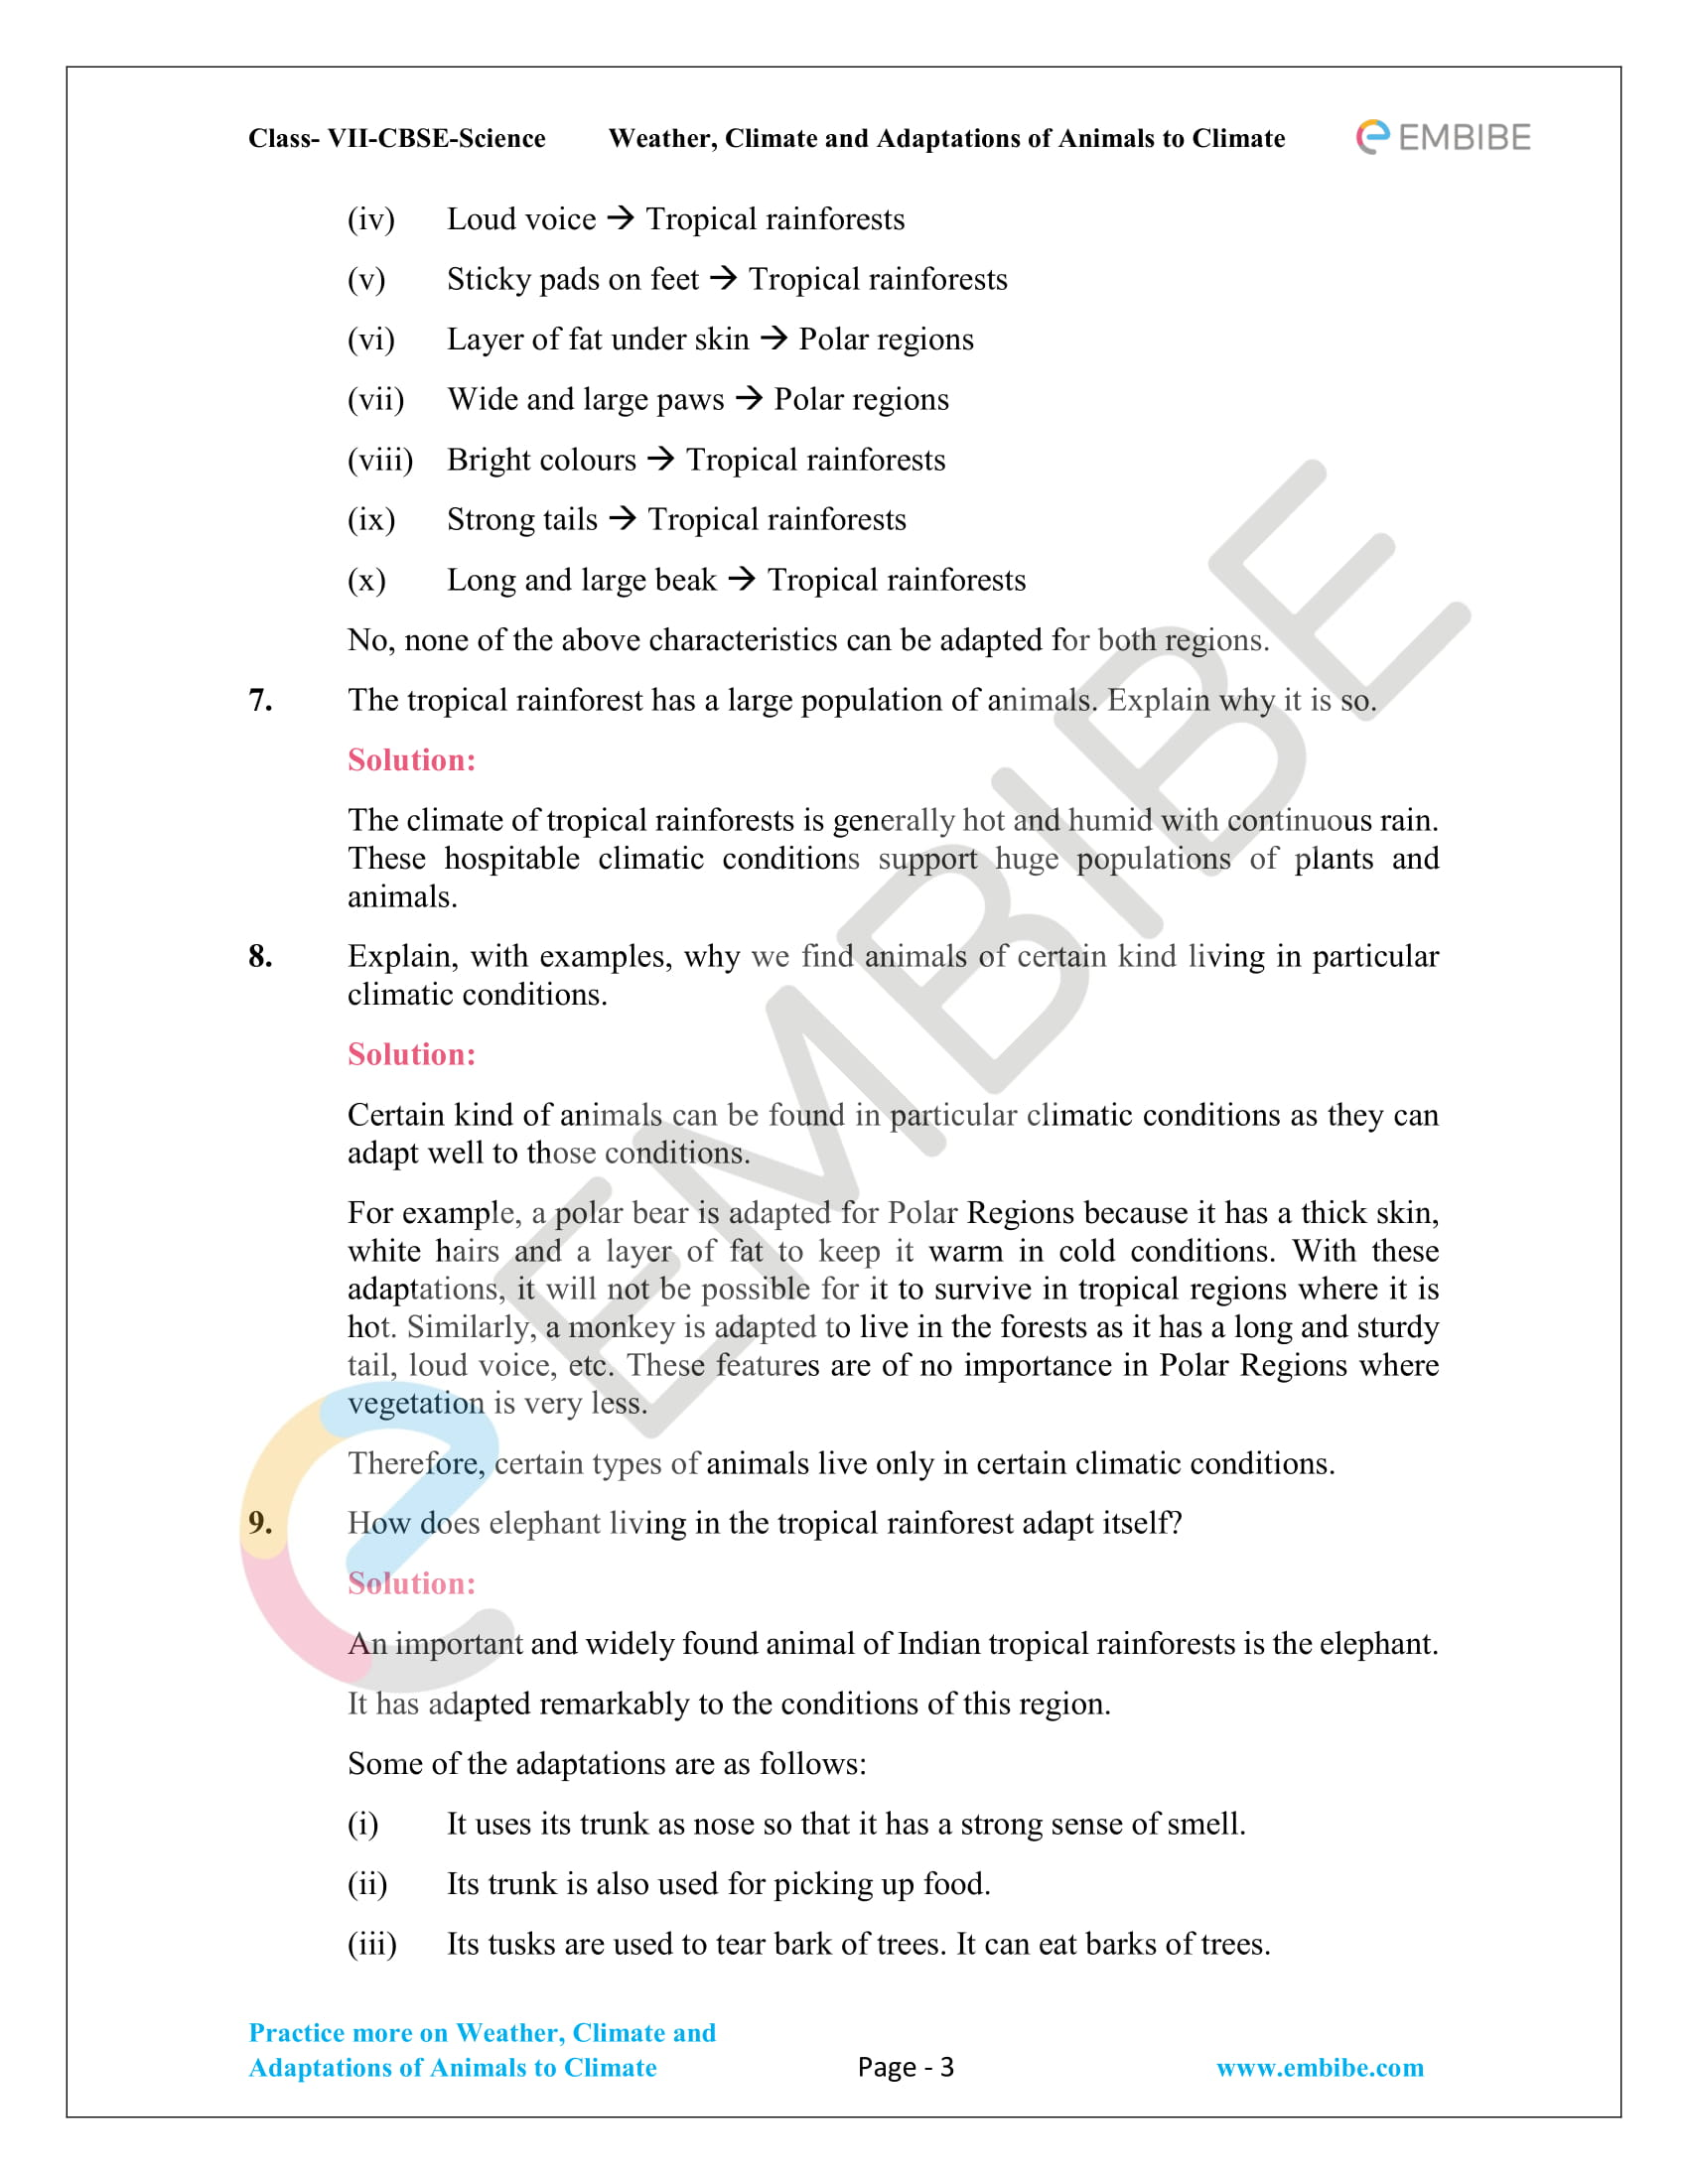 CBSE NCERT Solutions For Class 7 Science Chapter 7